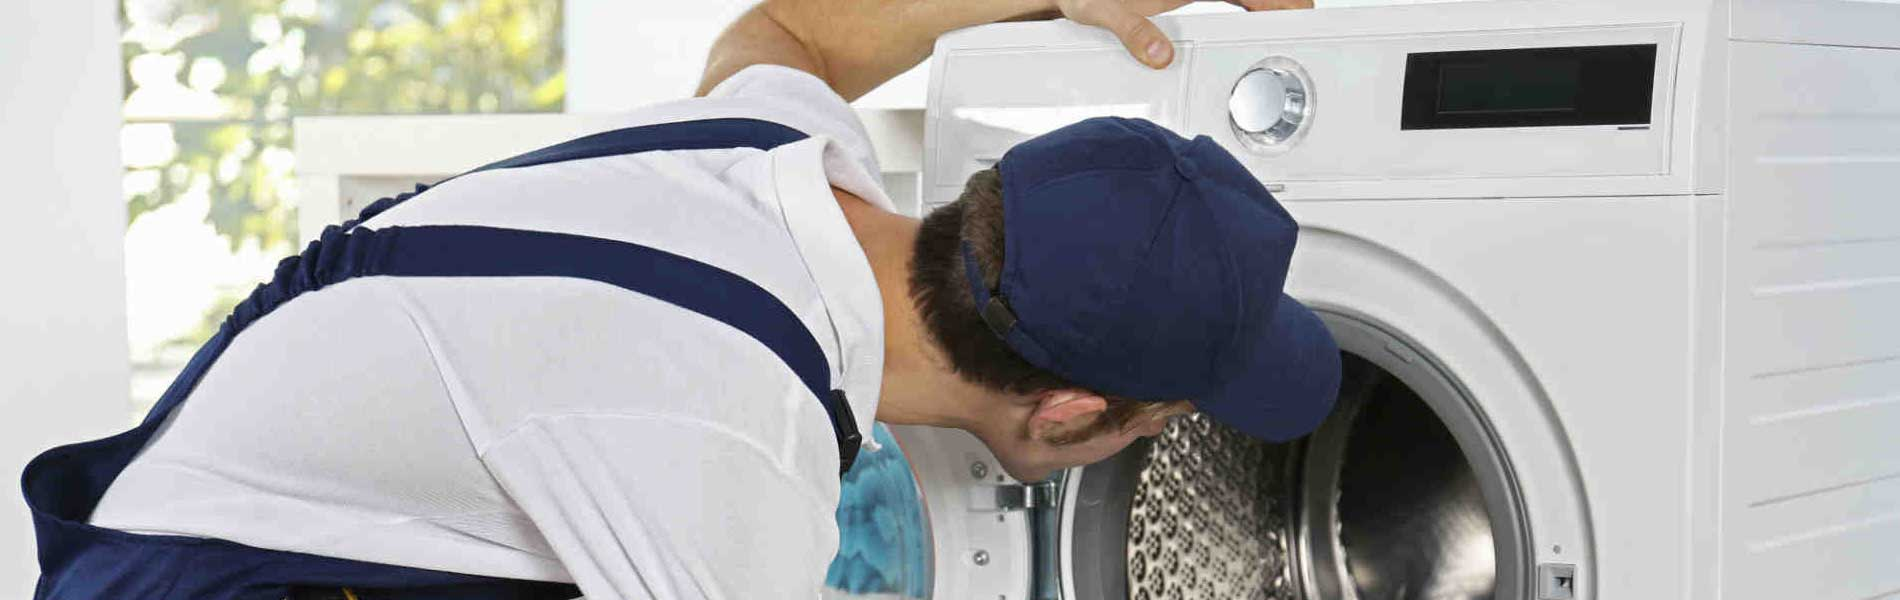 Whirlpool Washing Machine Service in Chepauk